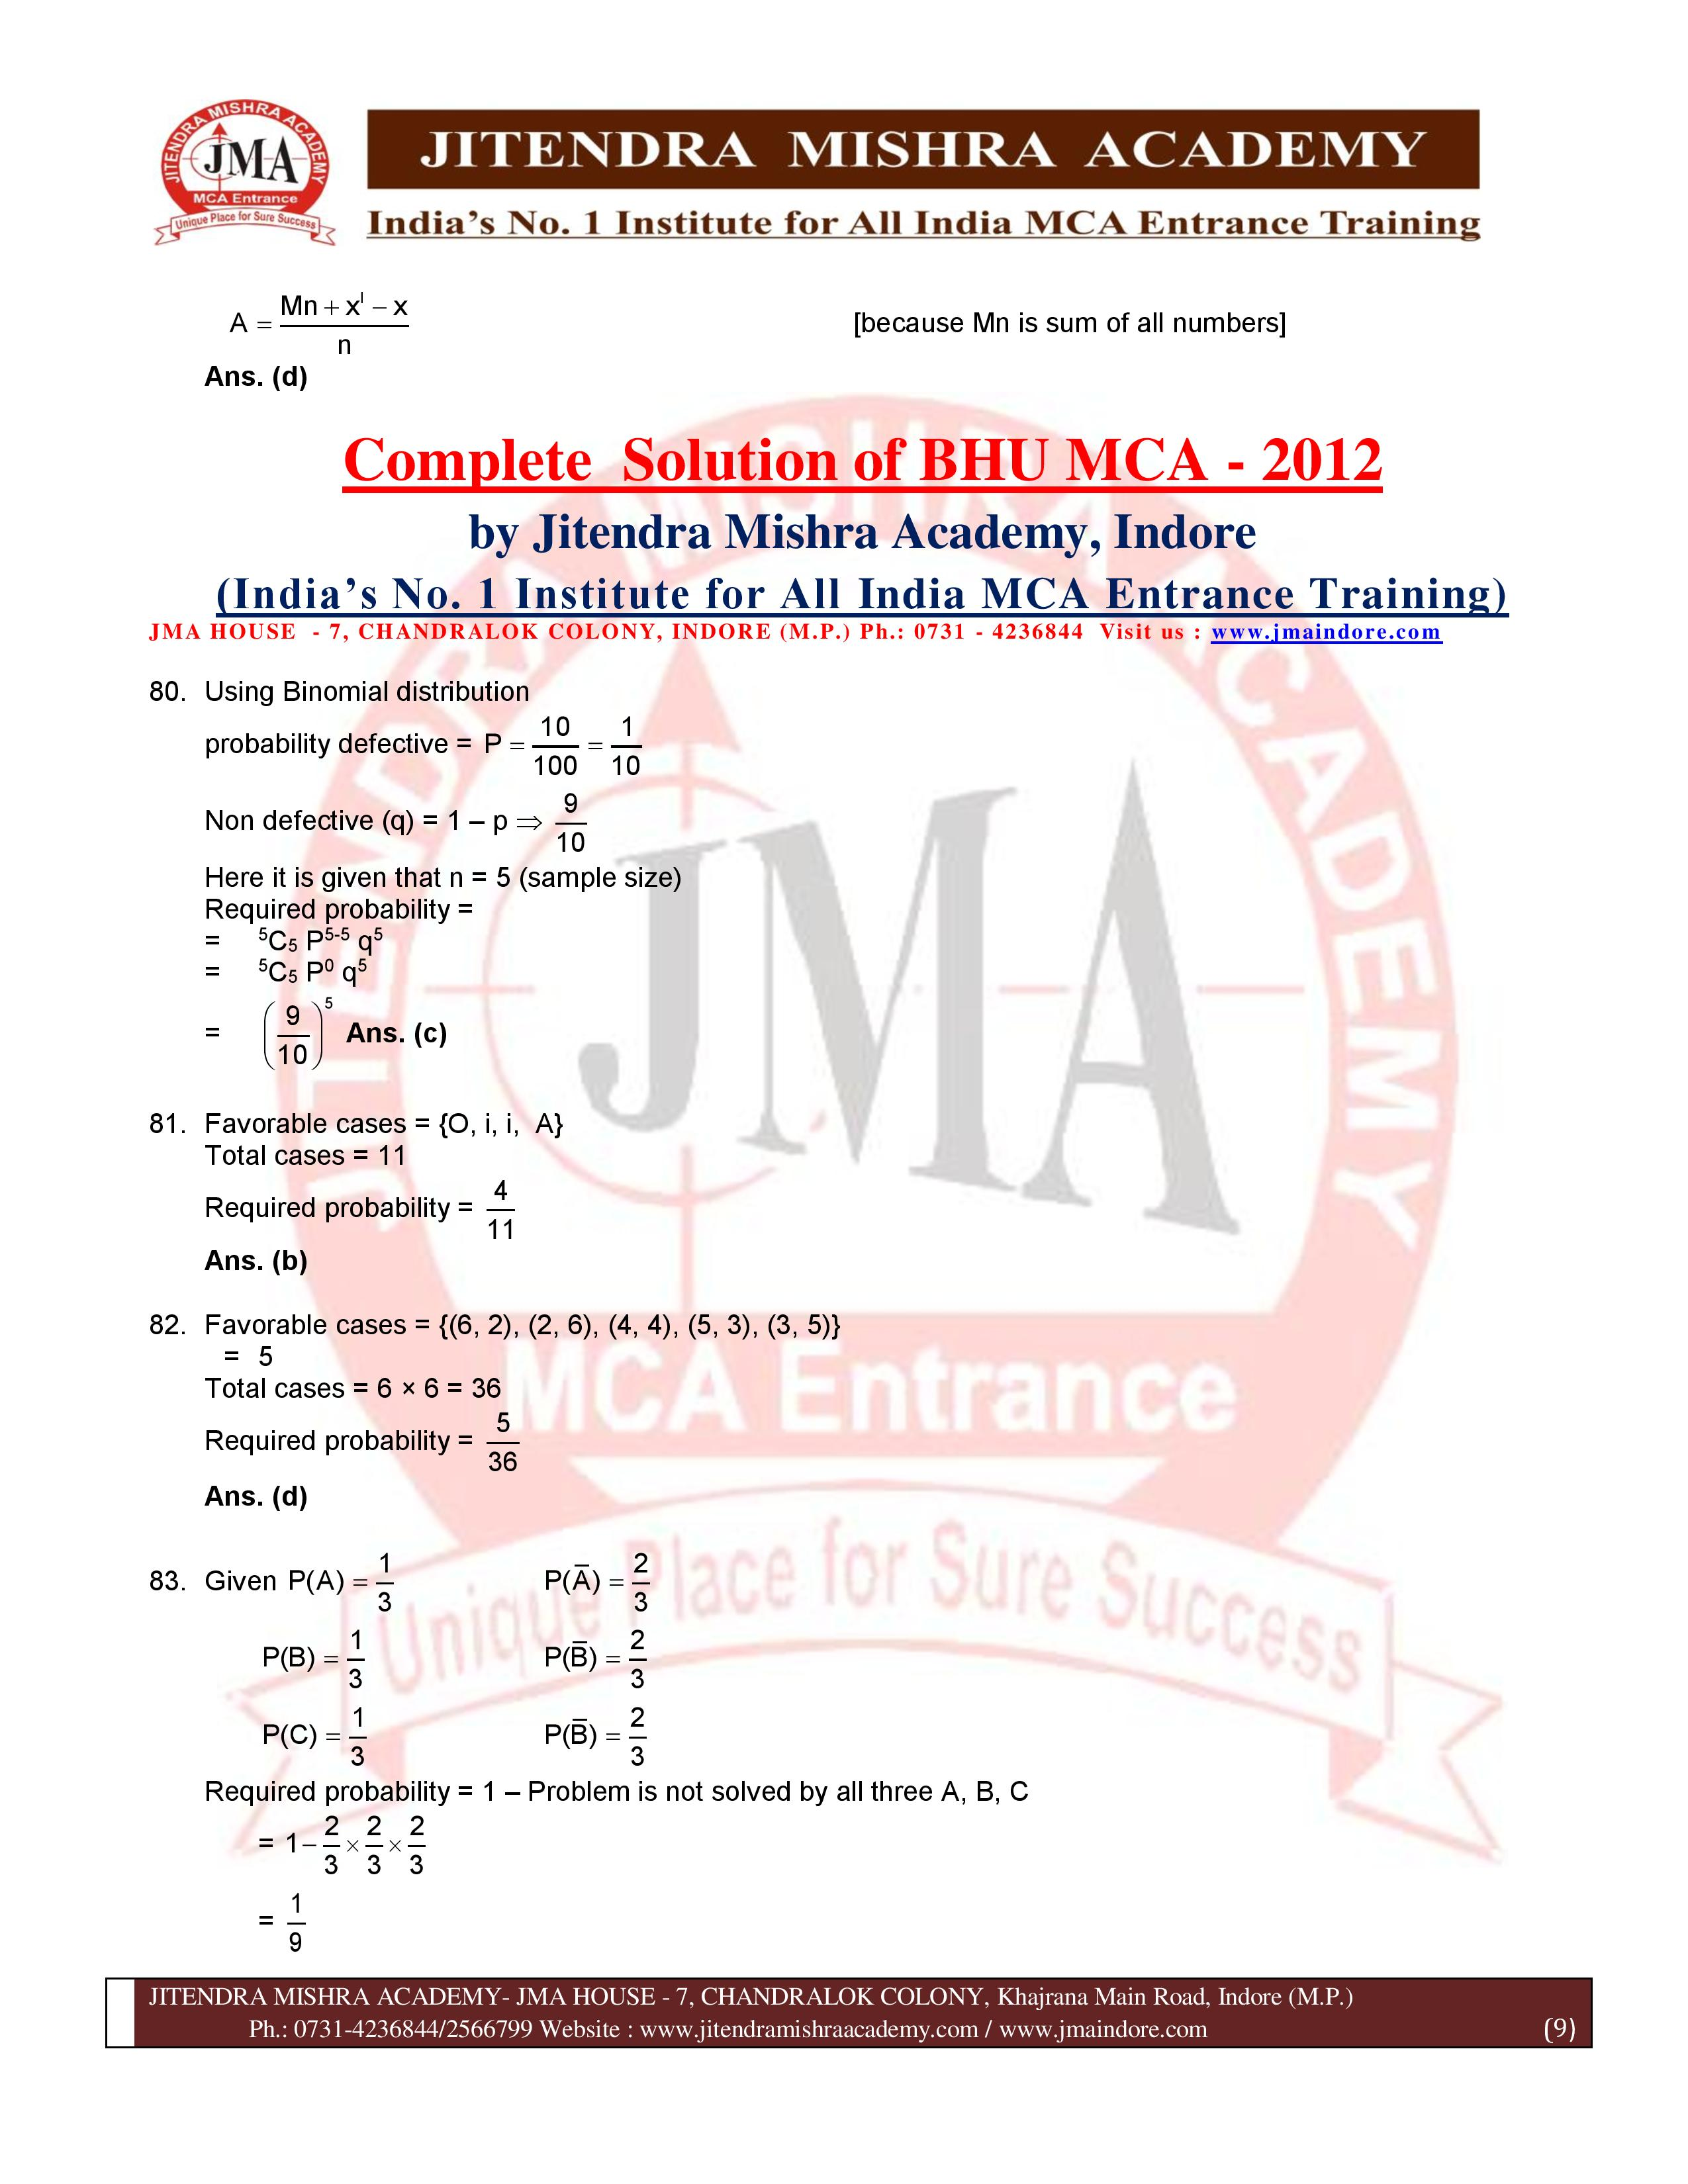 BHU 2012 SOLUTION (SET - 2) (07.07.16)-page-009